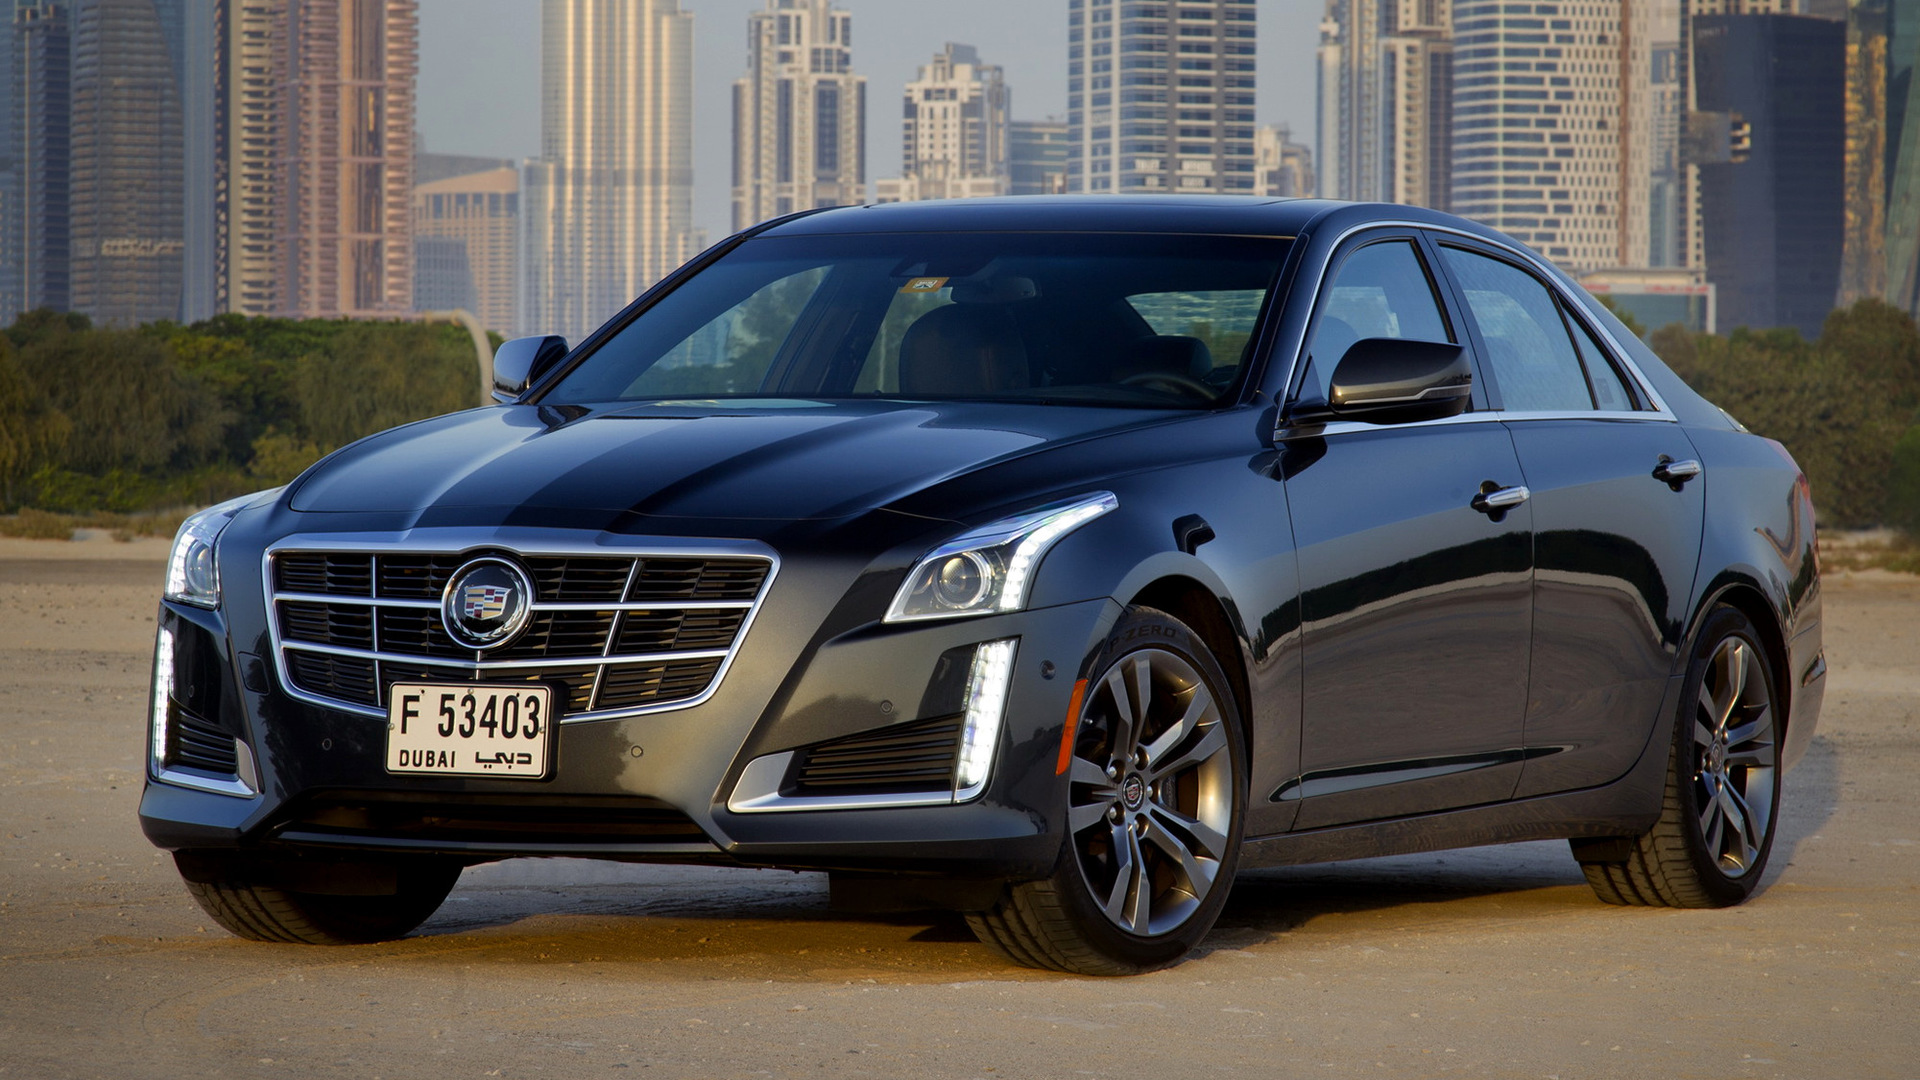 2014 Cadillac Cts Wallpapers And Hd Images Car Pixel